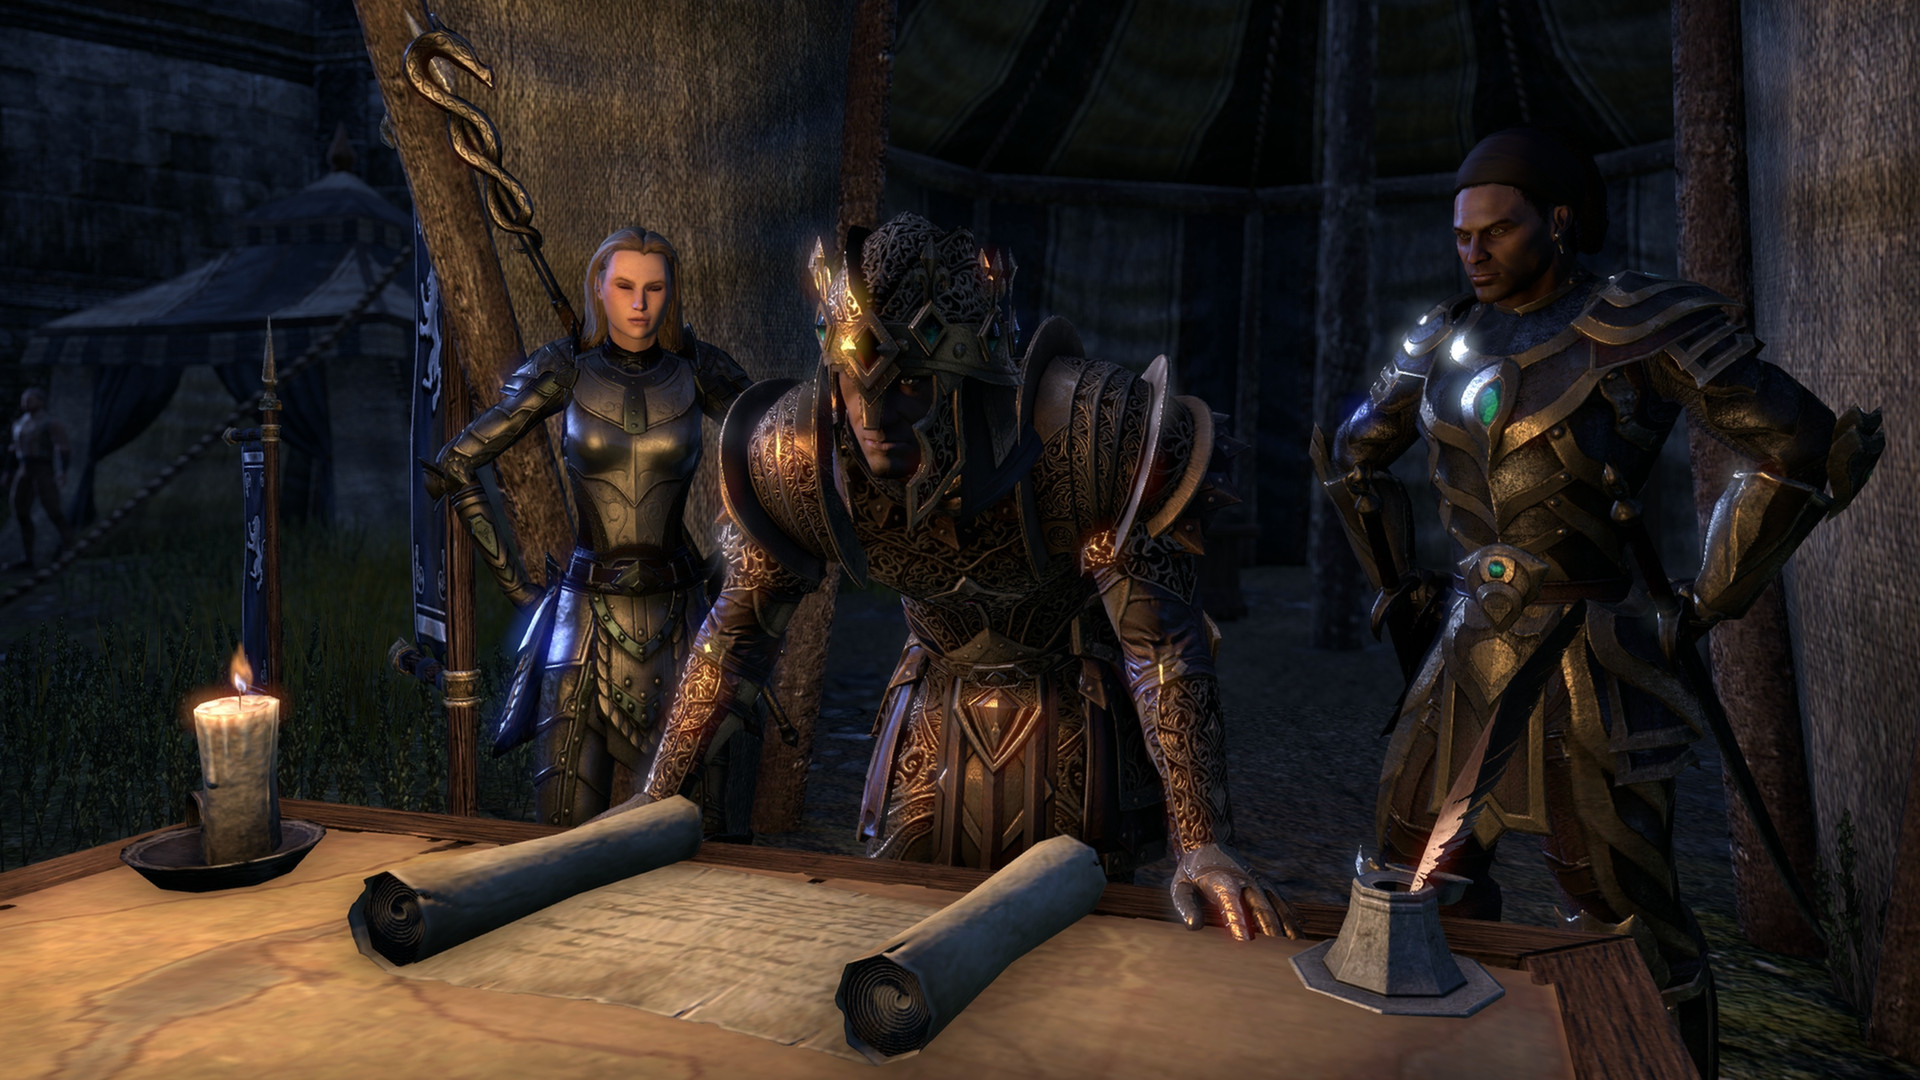 The Elder Scrolls Online Tamriel Unlimited TES Ru / Cis